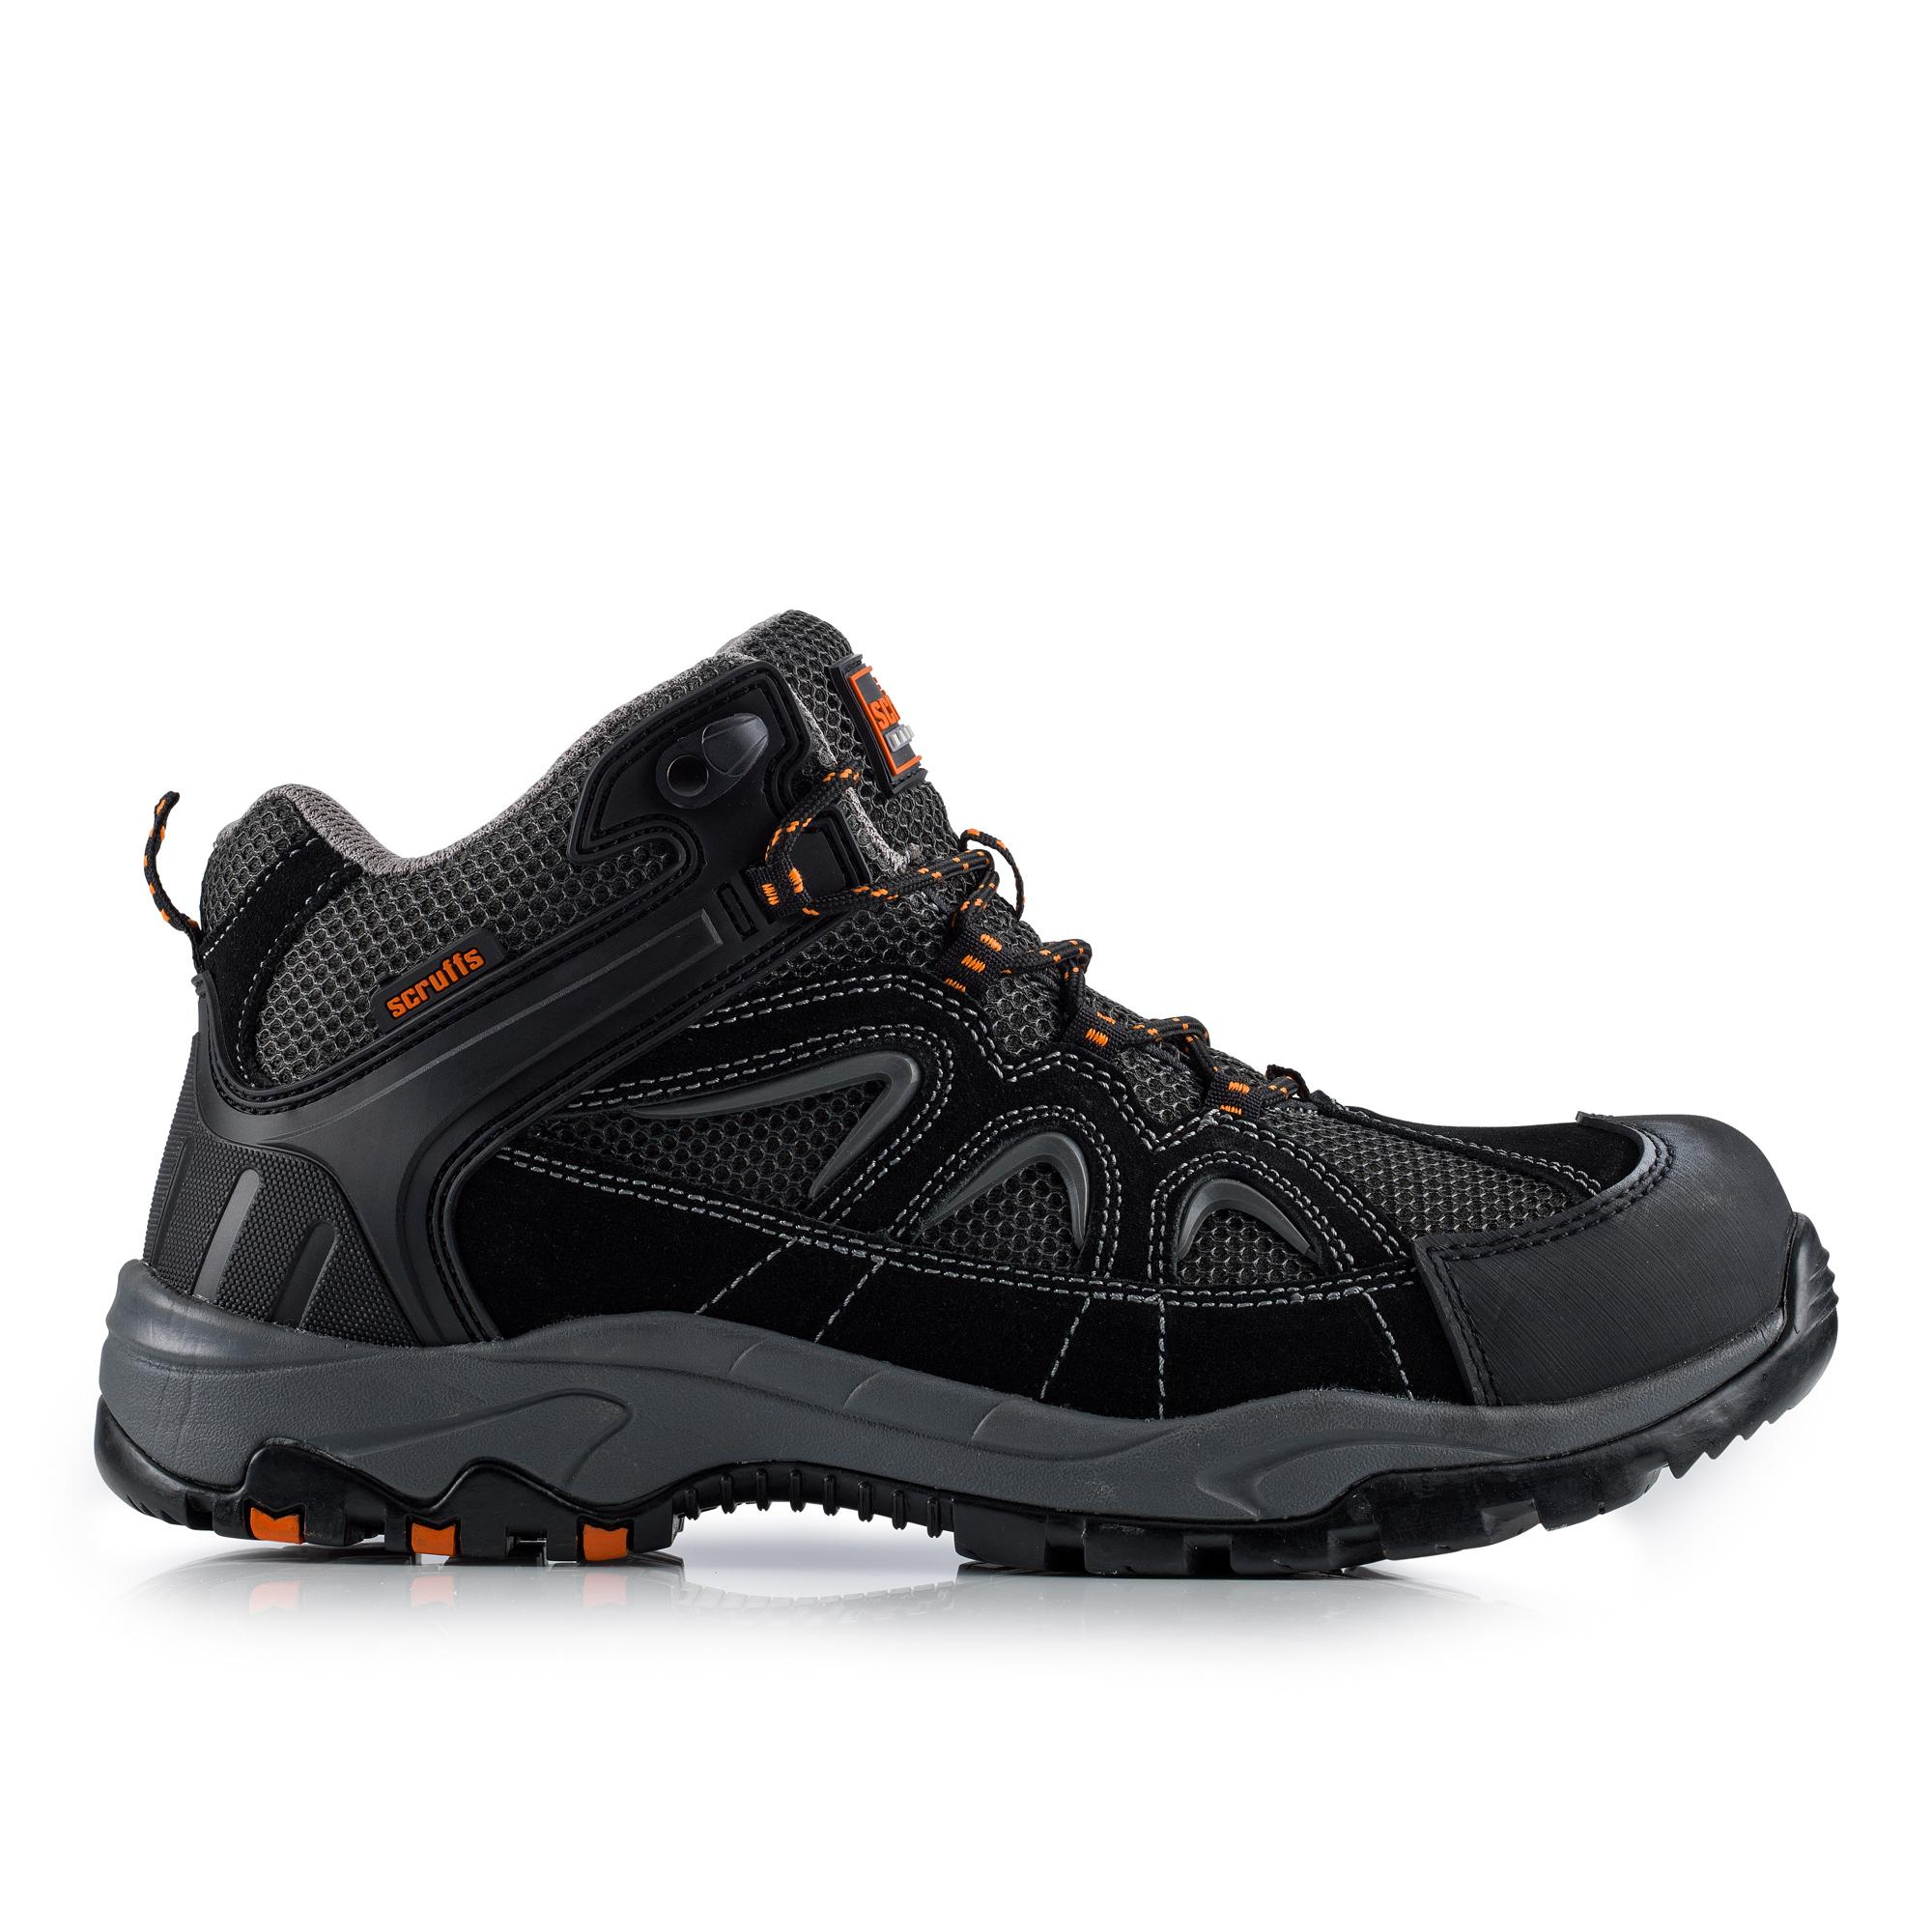 Scruffs Soar Safety Boots